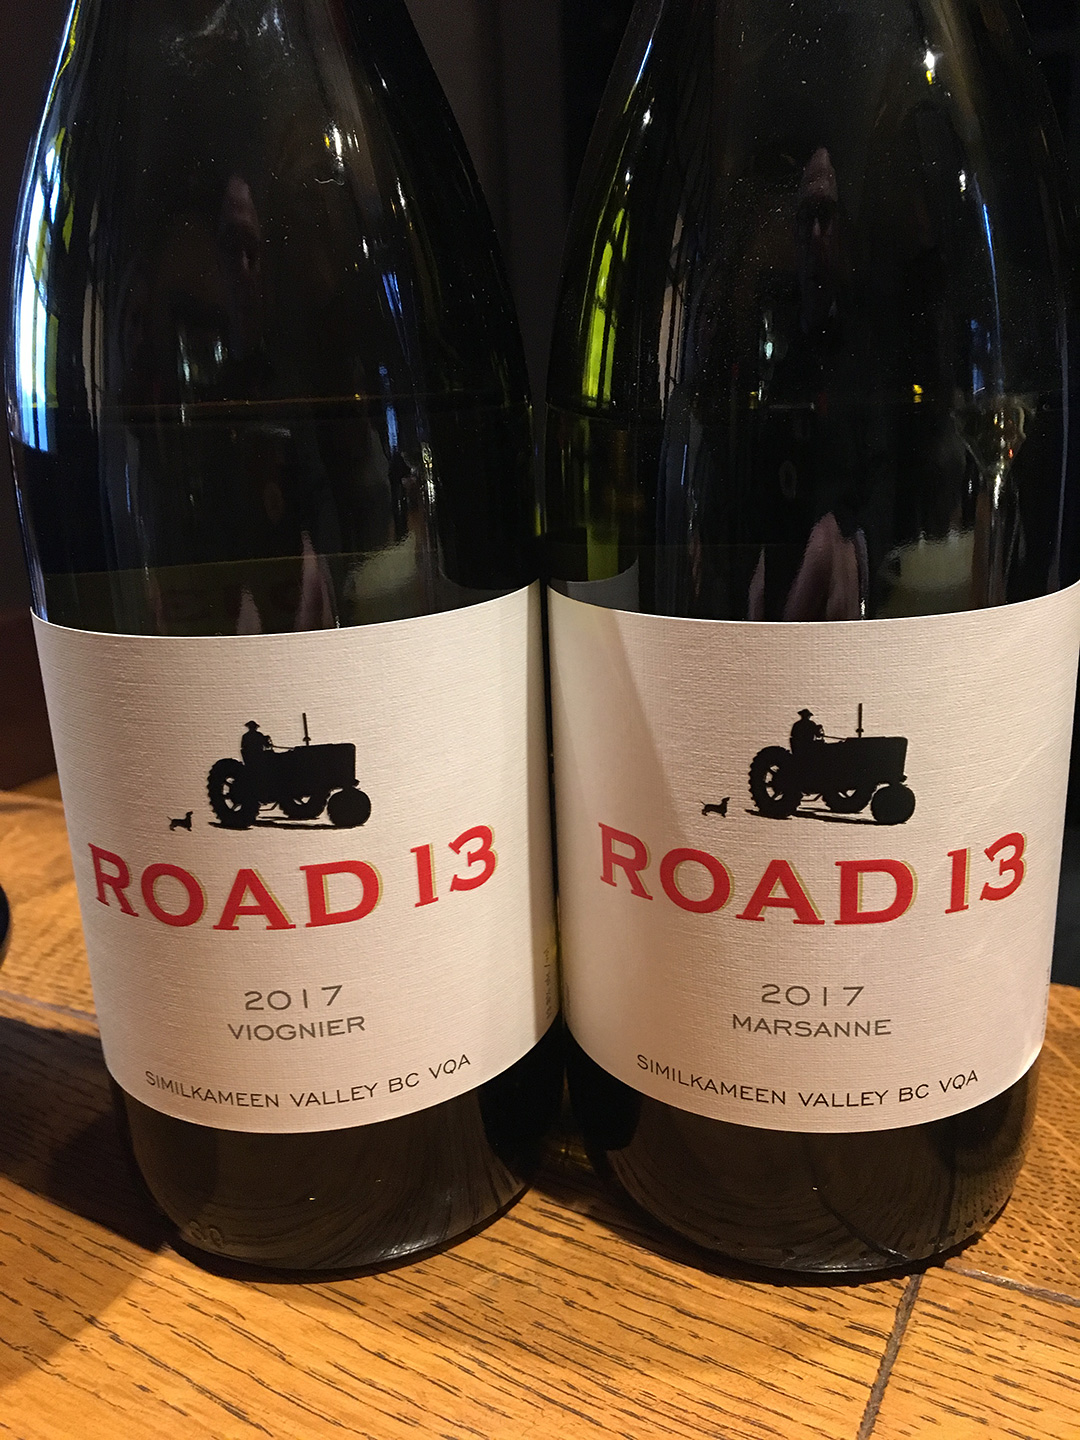 Road 13 Marsanne 2017 and Viognier 2017